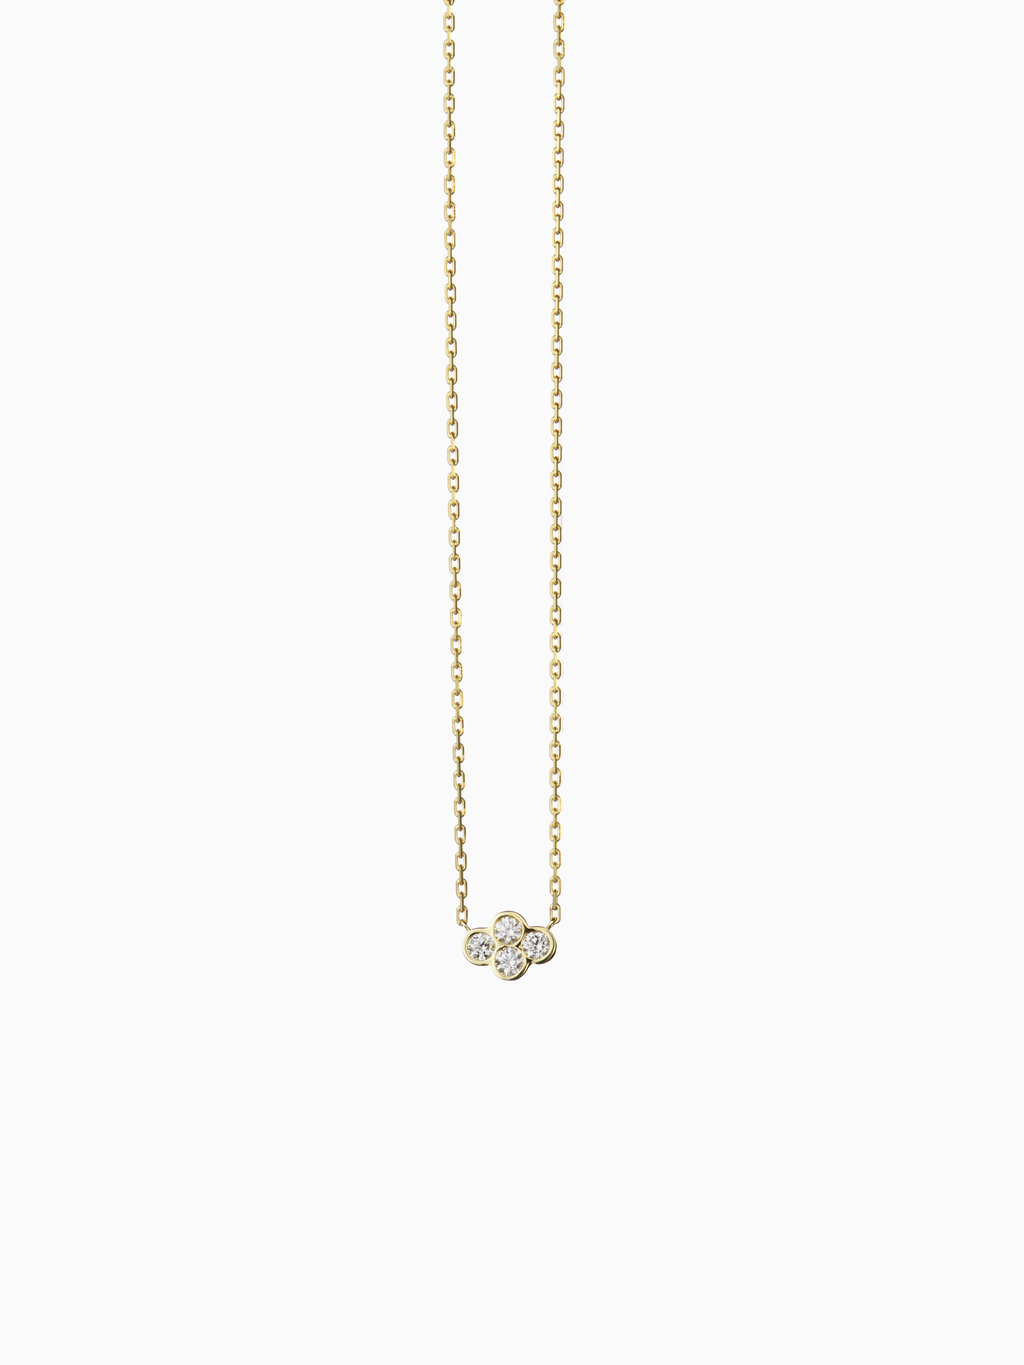 Atlas / Necklace / Diamond / Gold